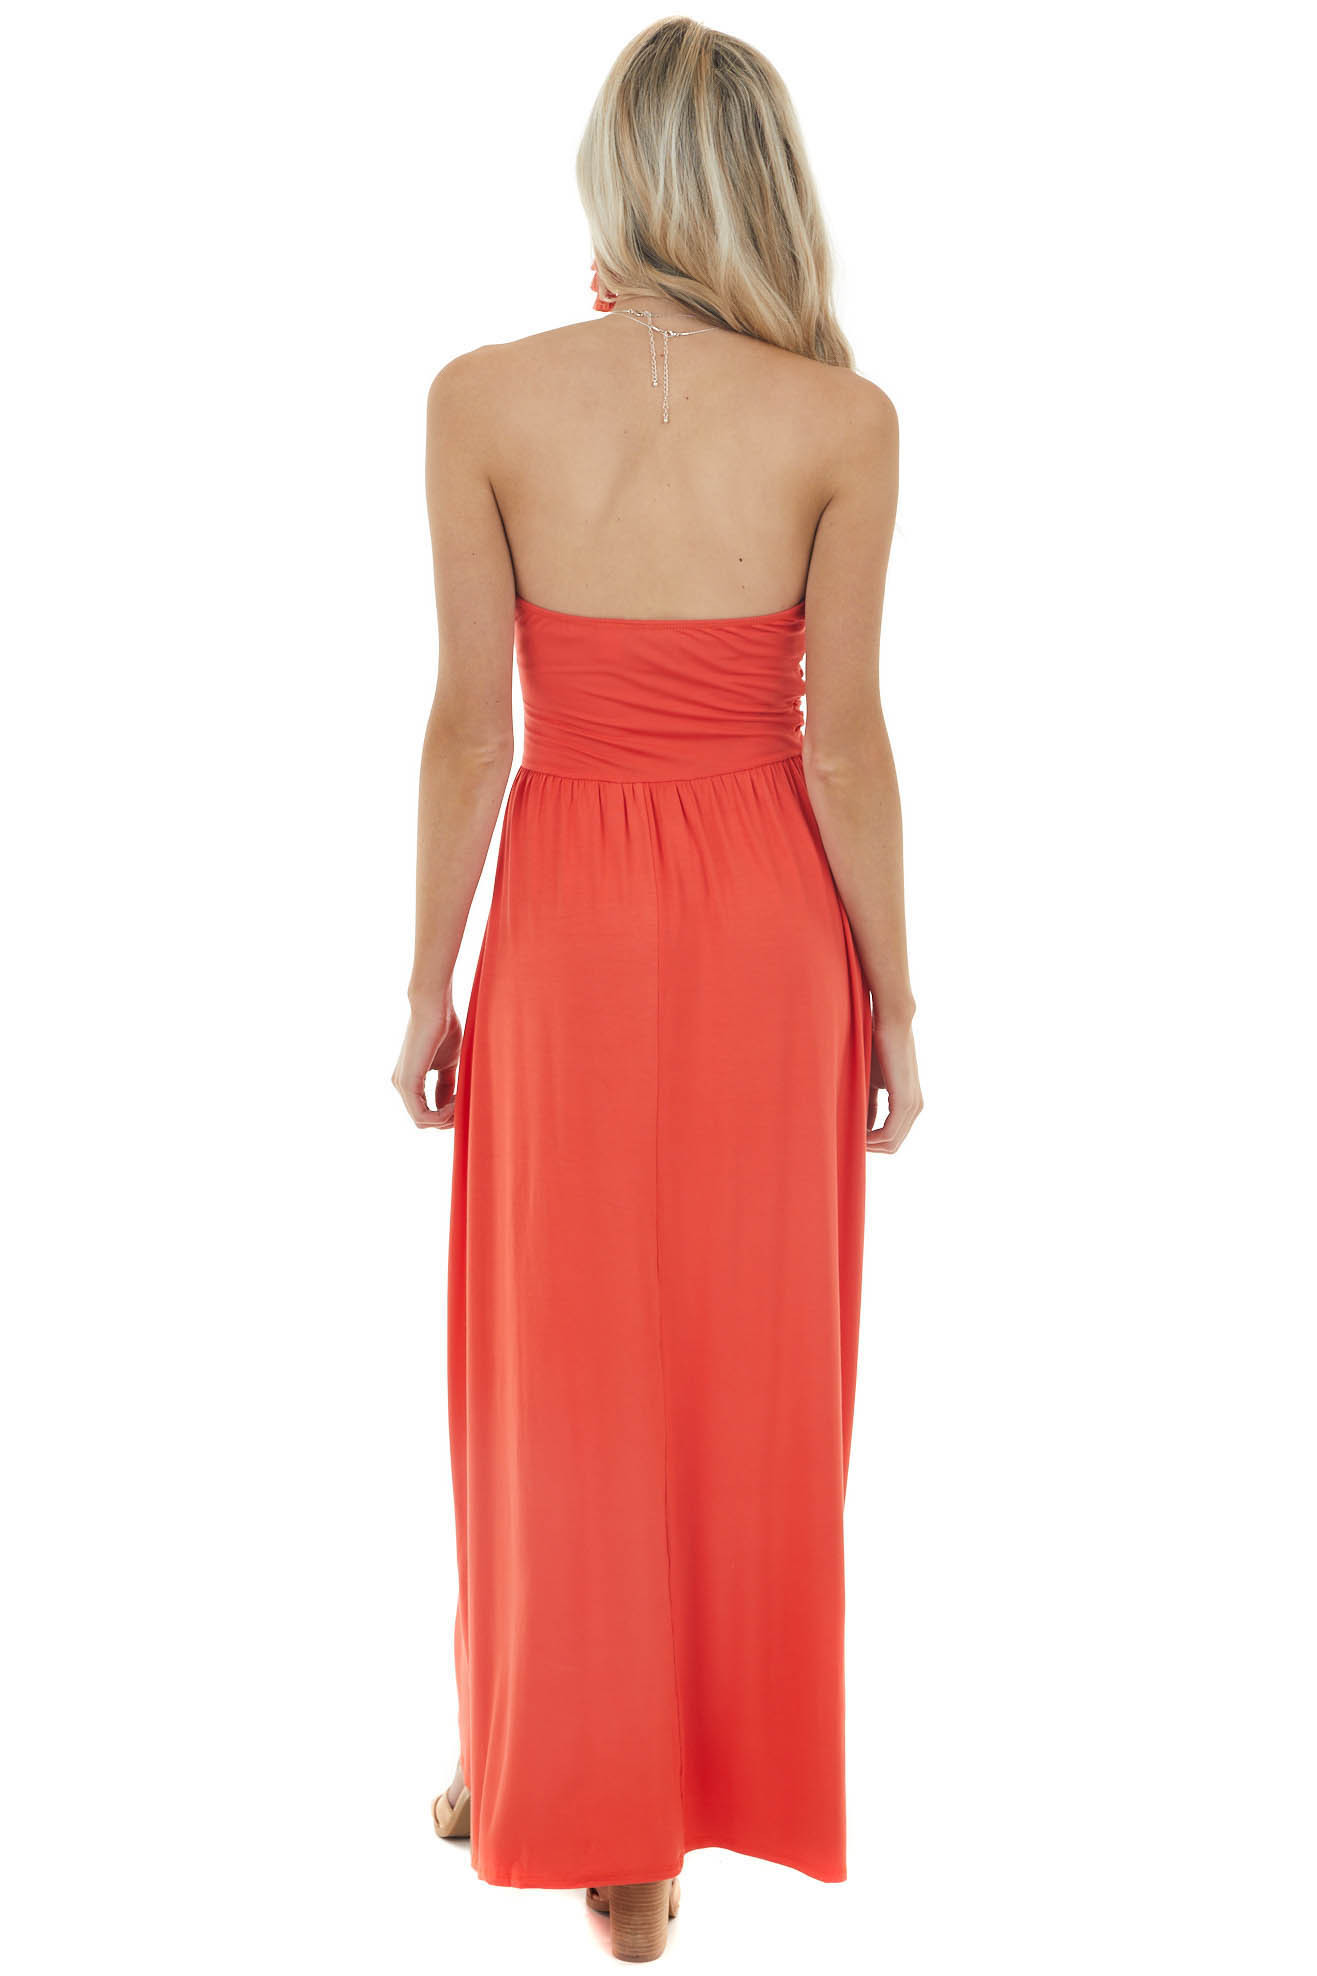 Fire Orange Strapless Maxi Dress with Ruching Details